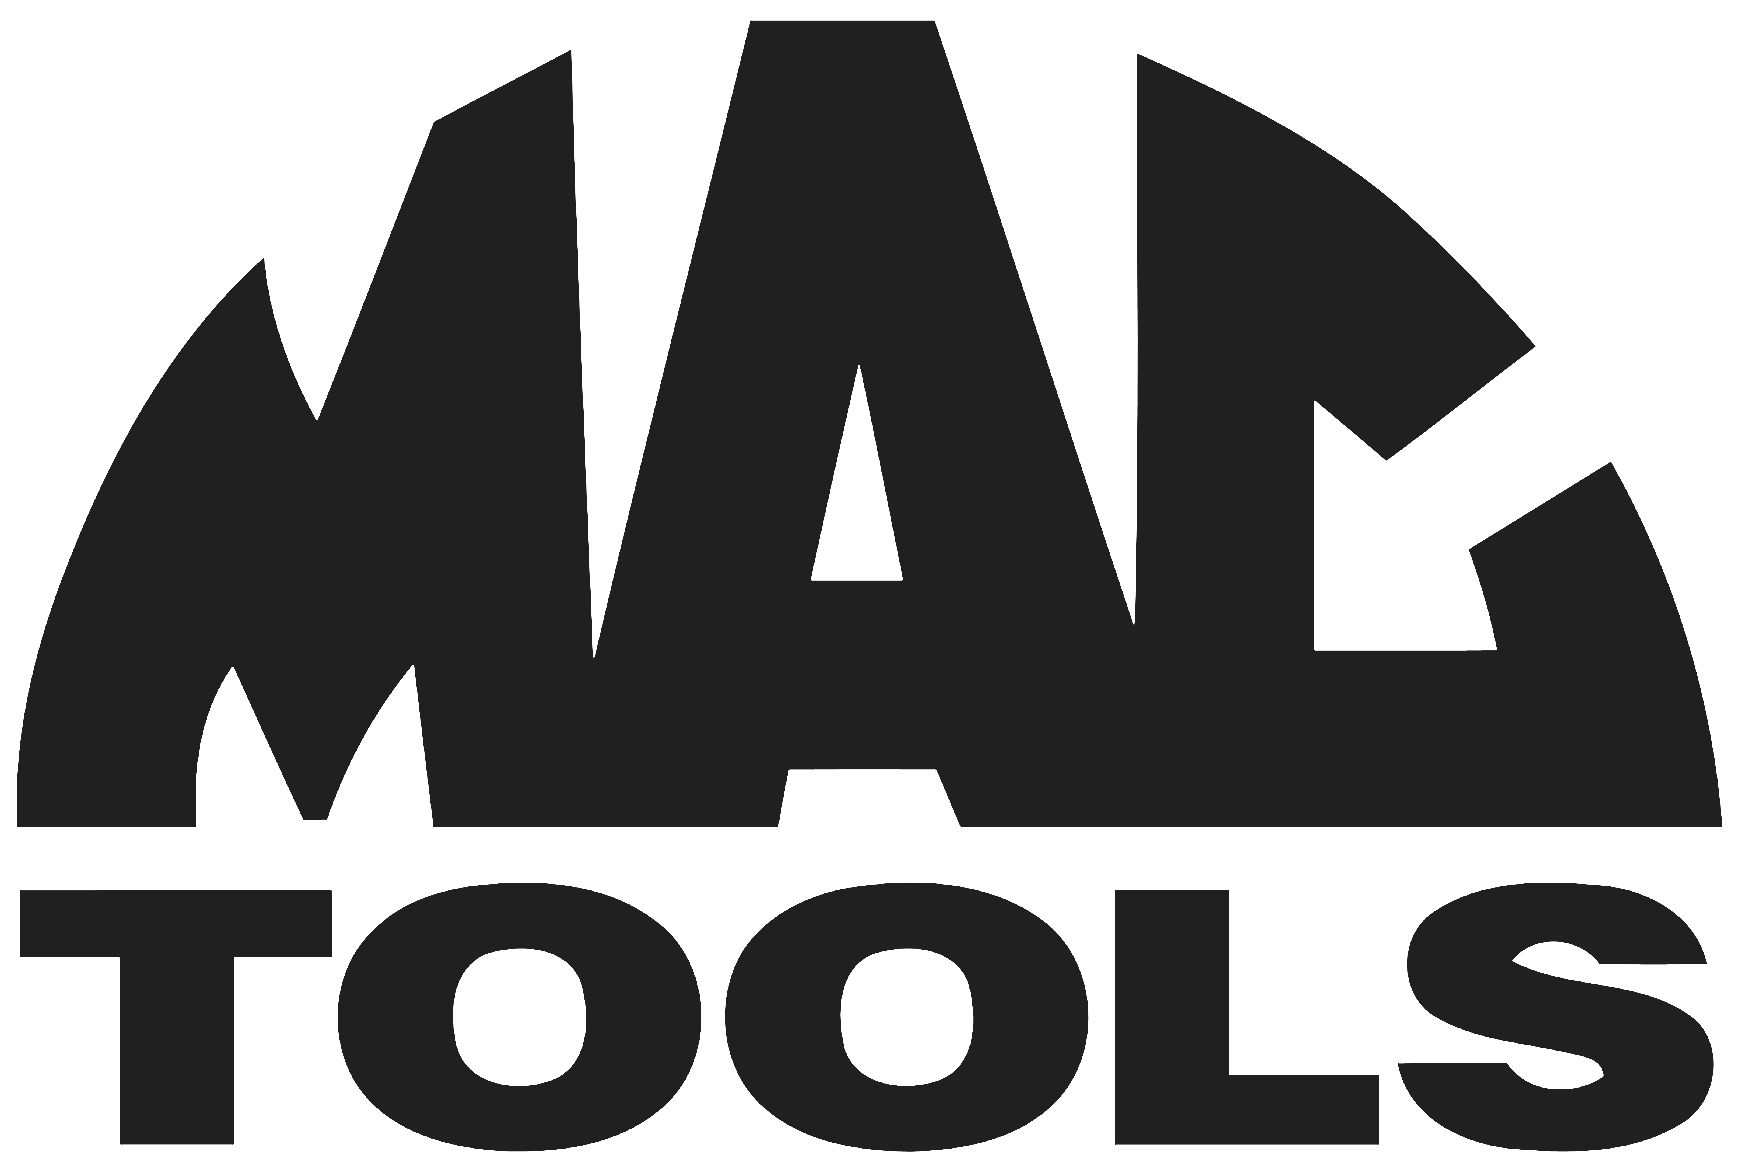 Mac tools logo clipart clip freeuse library MAC tools logo emblem by Plastic_Innovations - Thingiverse clip freeuse library